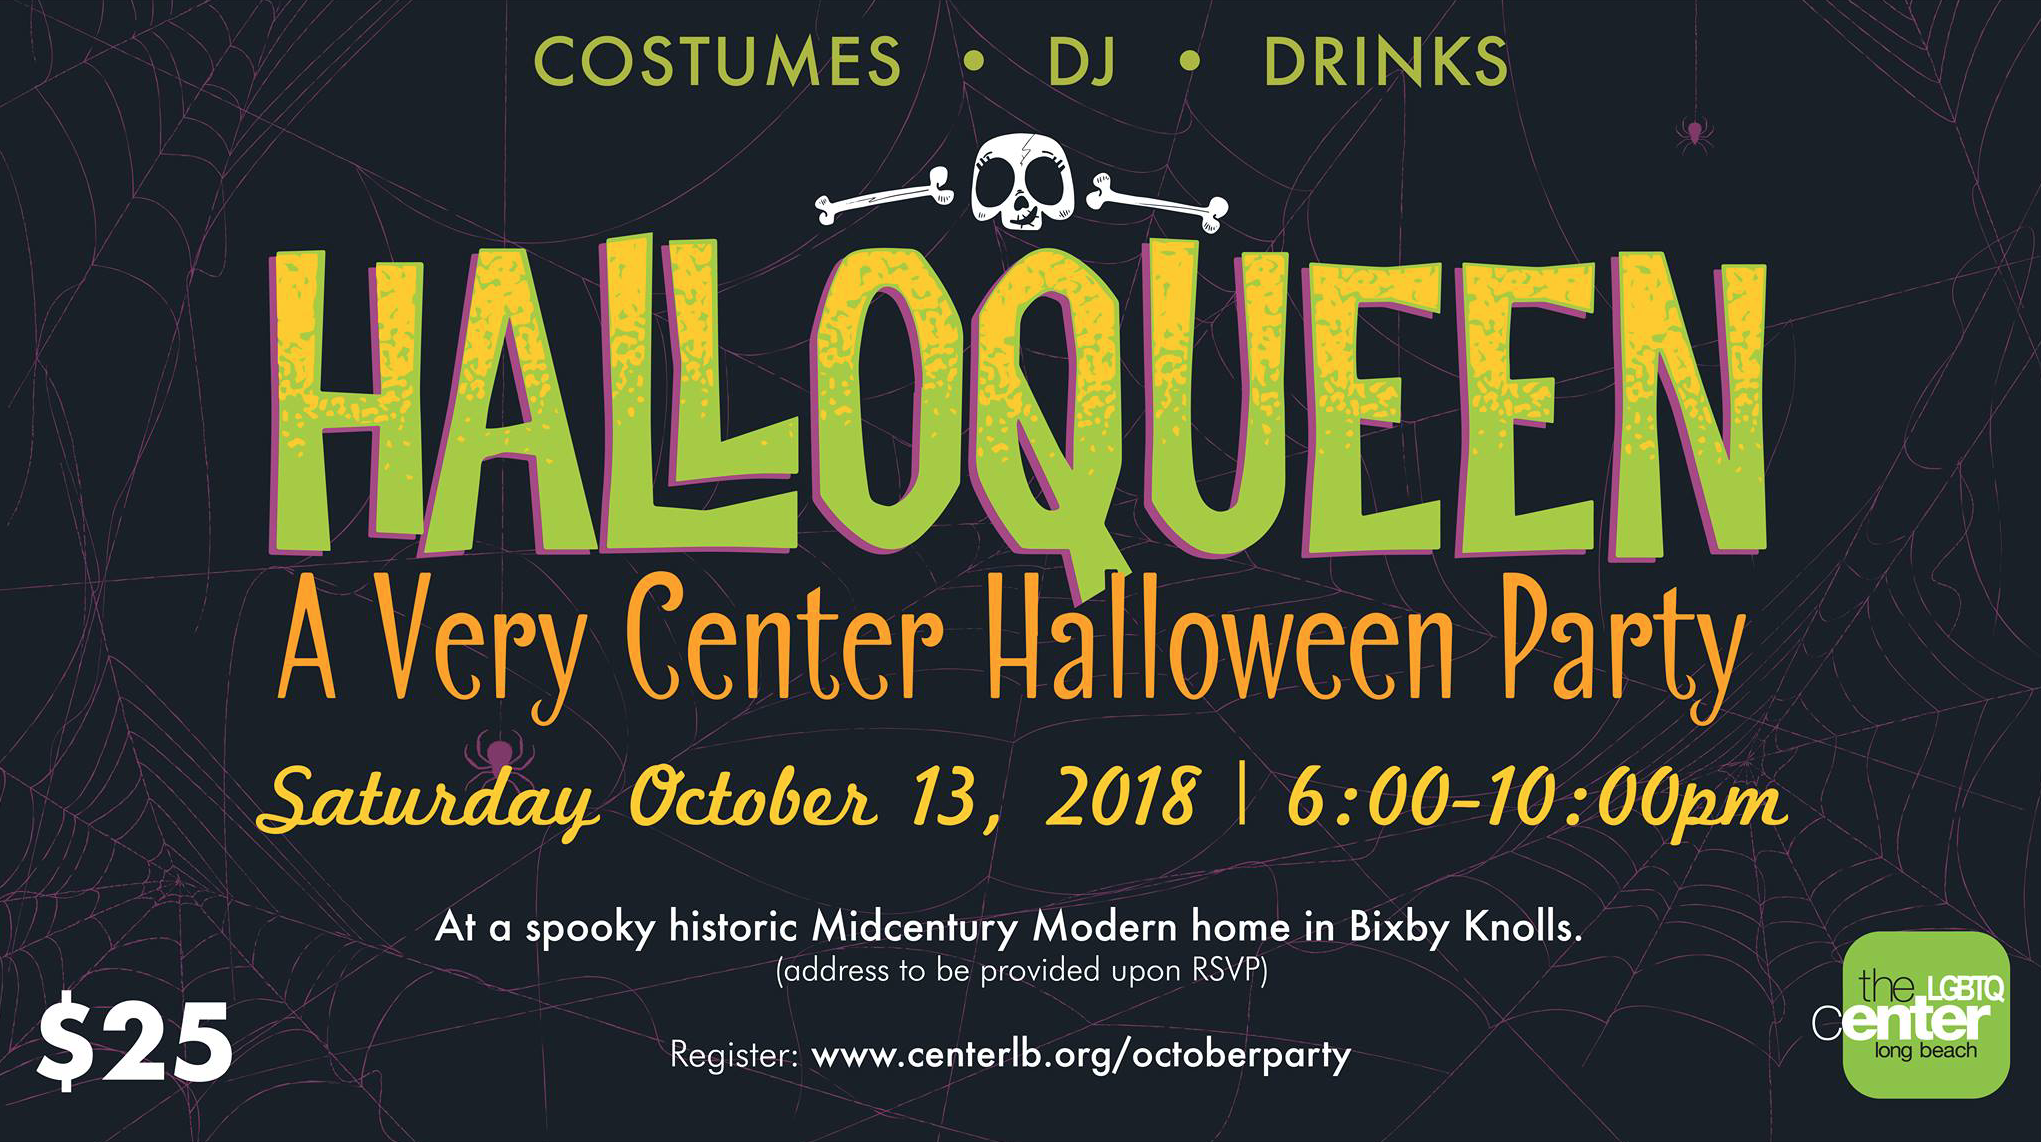 Trans Halloween Party Oct 31 2020 Los Angeles A Queer Spooktacular: 5 LGBTQ+ Halloween events in L.A. This Month